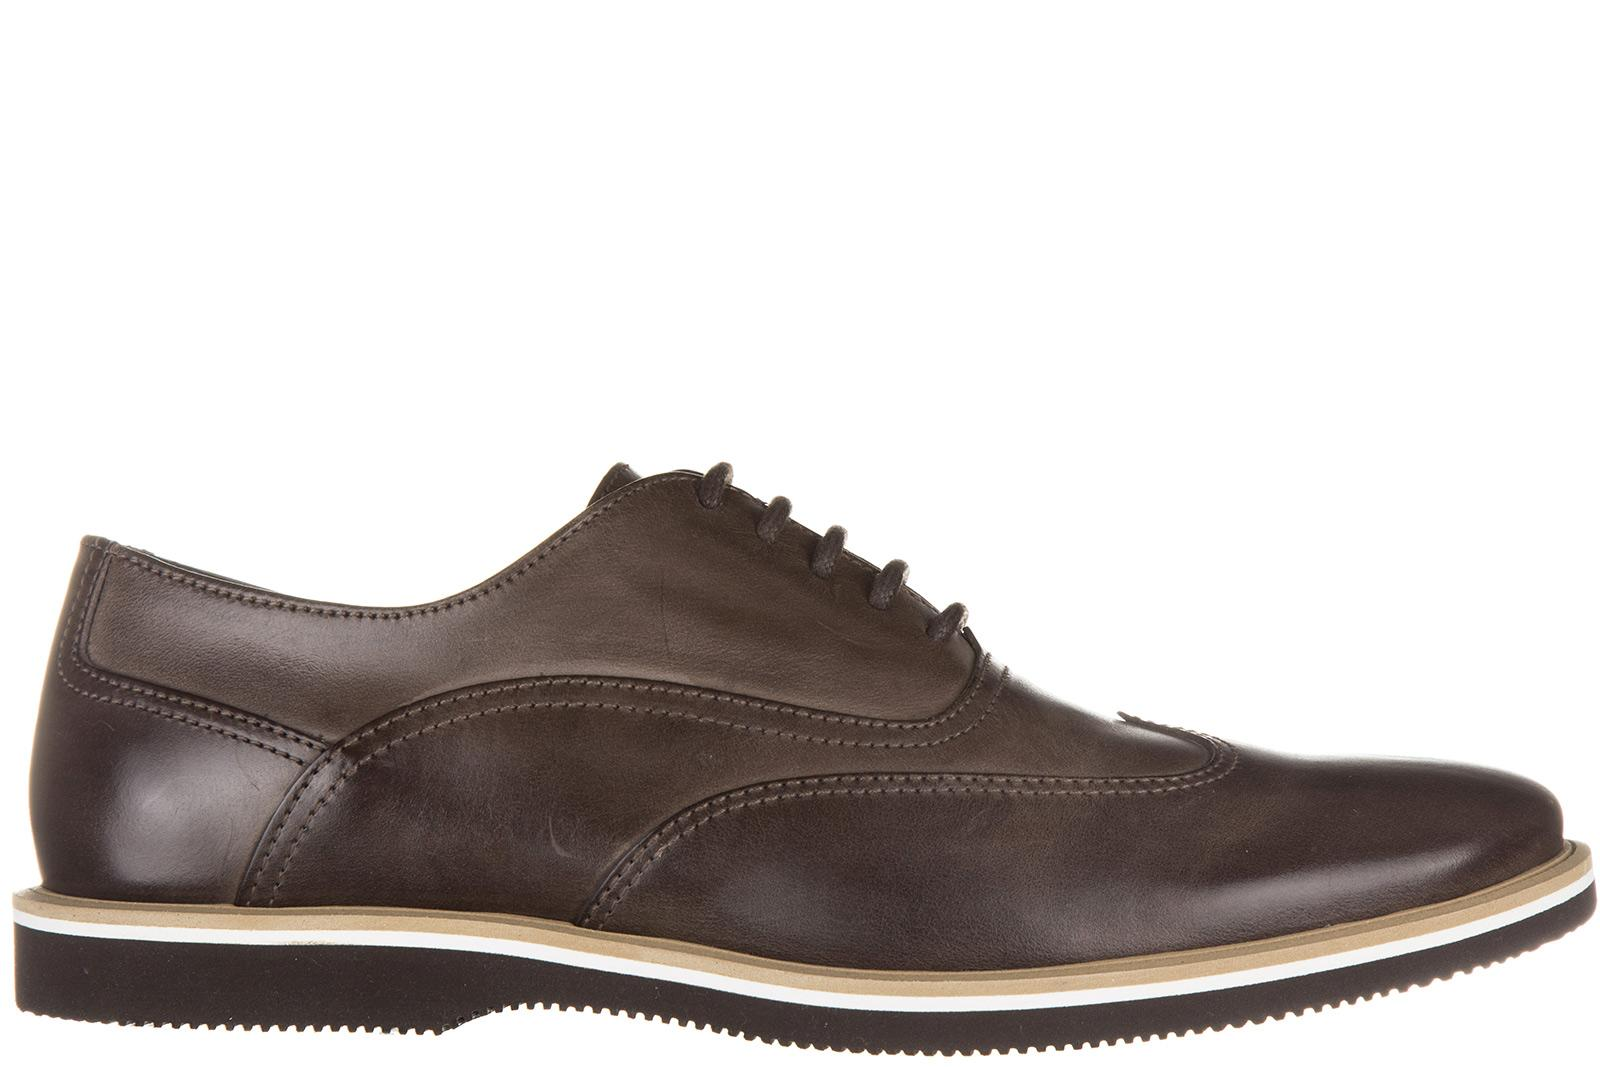 Hogan Men's Classic Leather Lace Up Laced Formal Shoes Oxford H262 ...